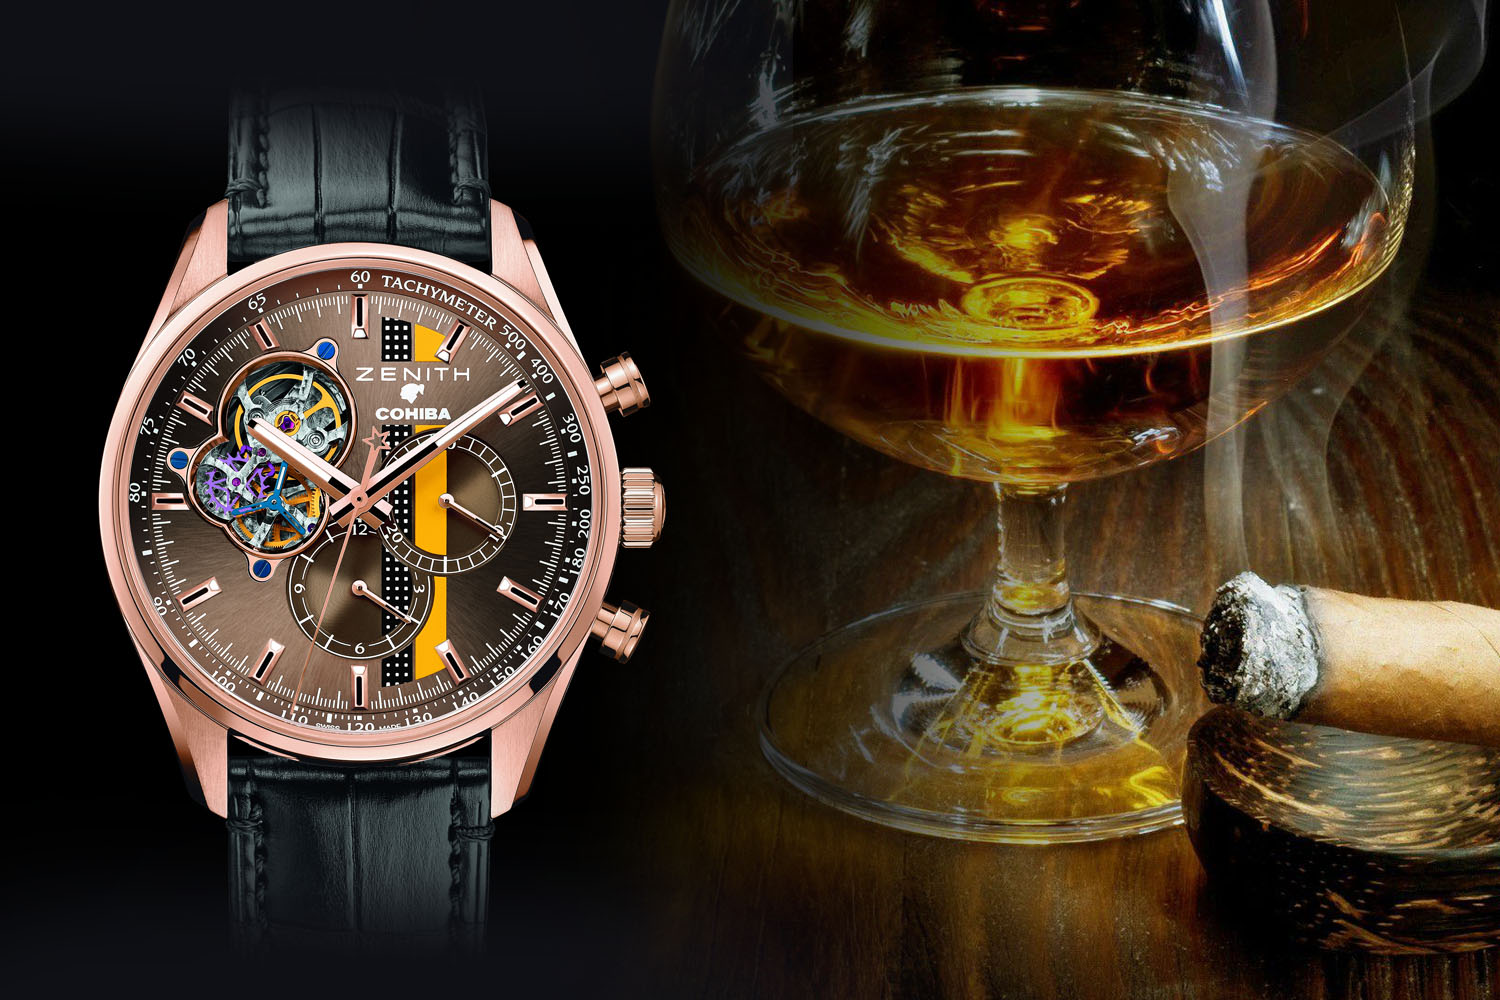 Booze and Havana - 4 watches inspired by fine alcohols and cigars from Hublot, Zenith, Armin Strom and Speake-Marin